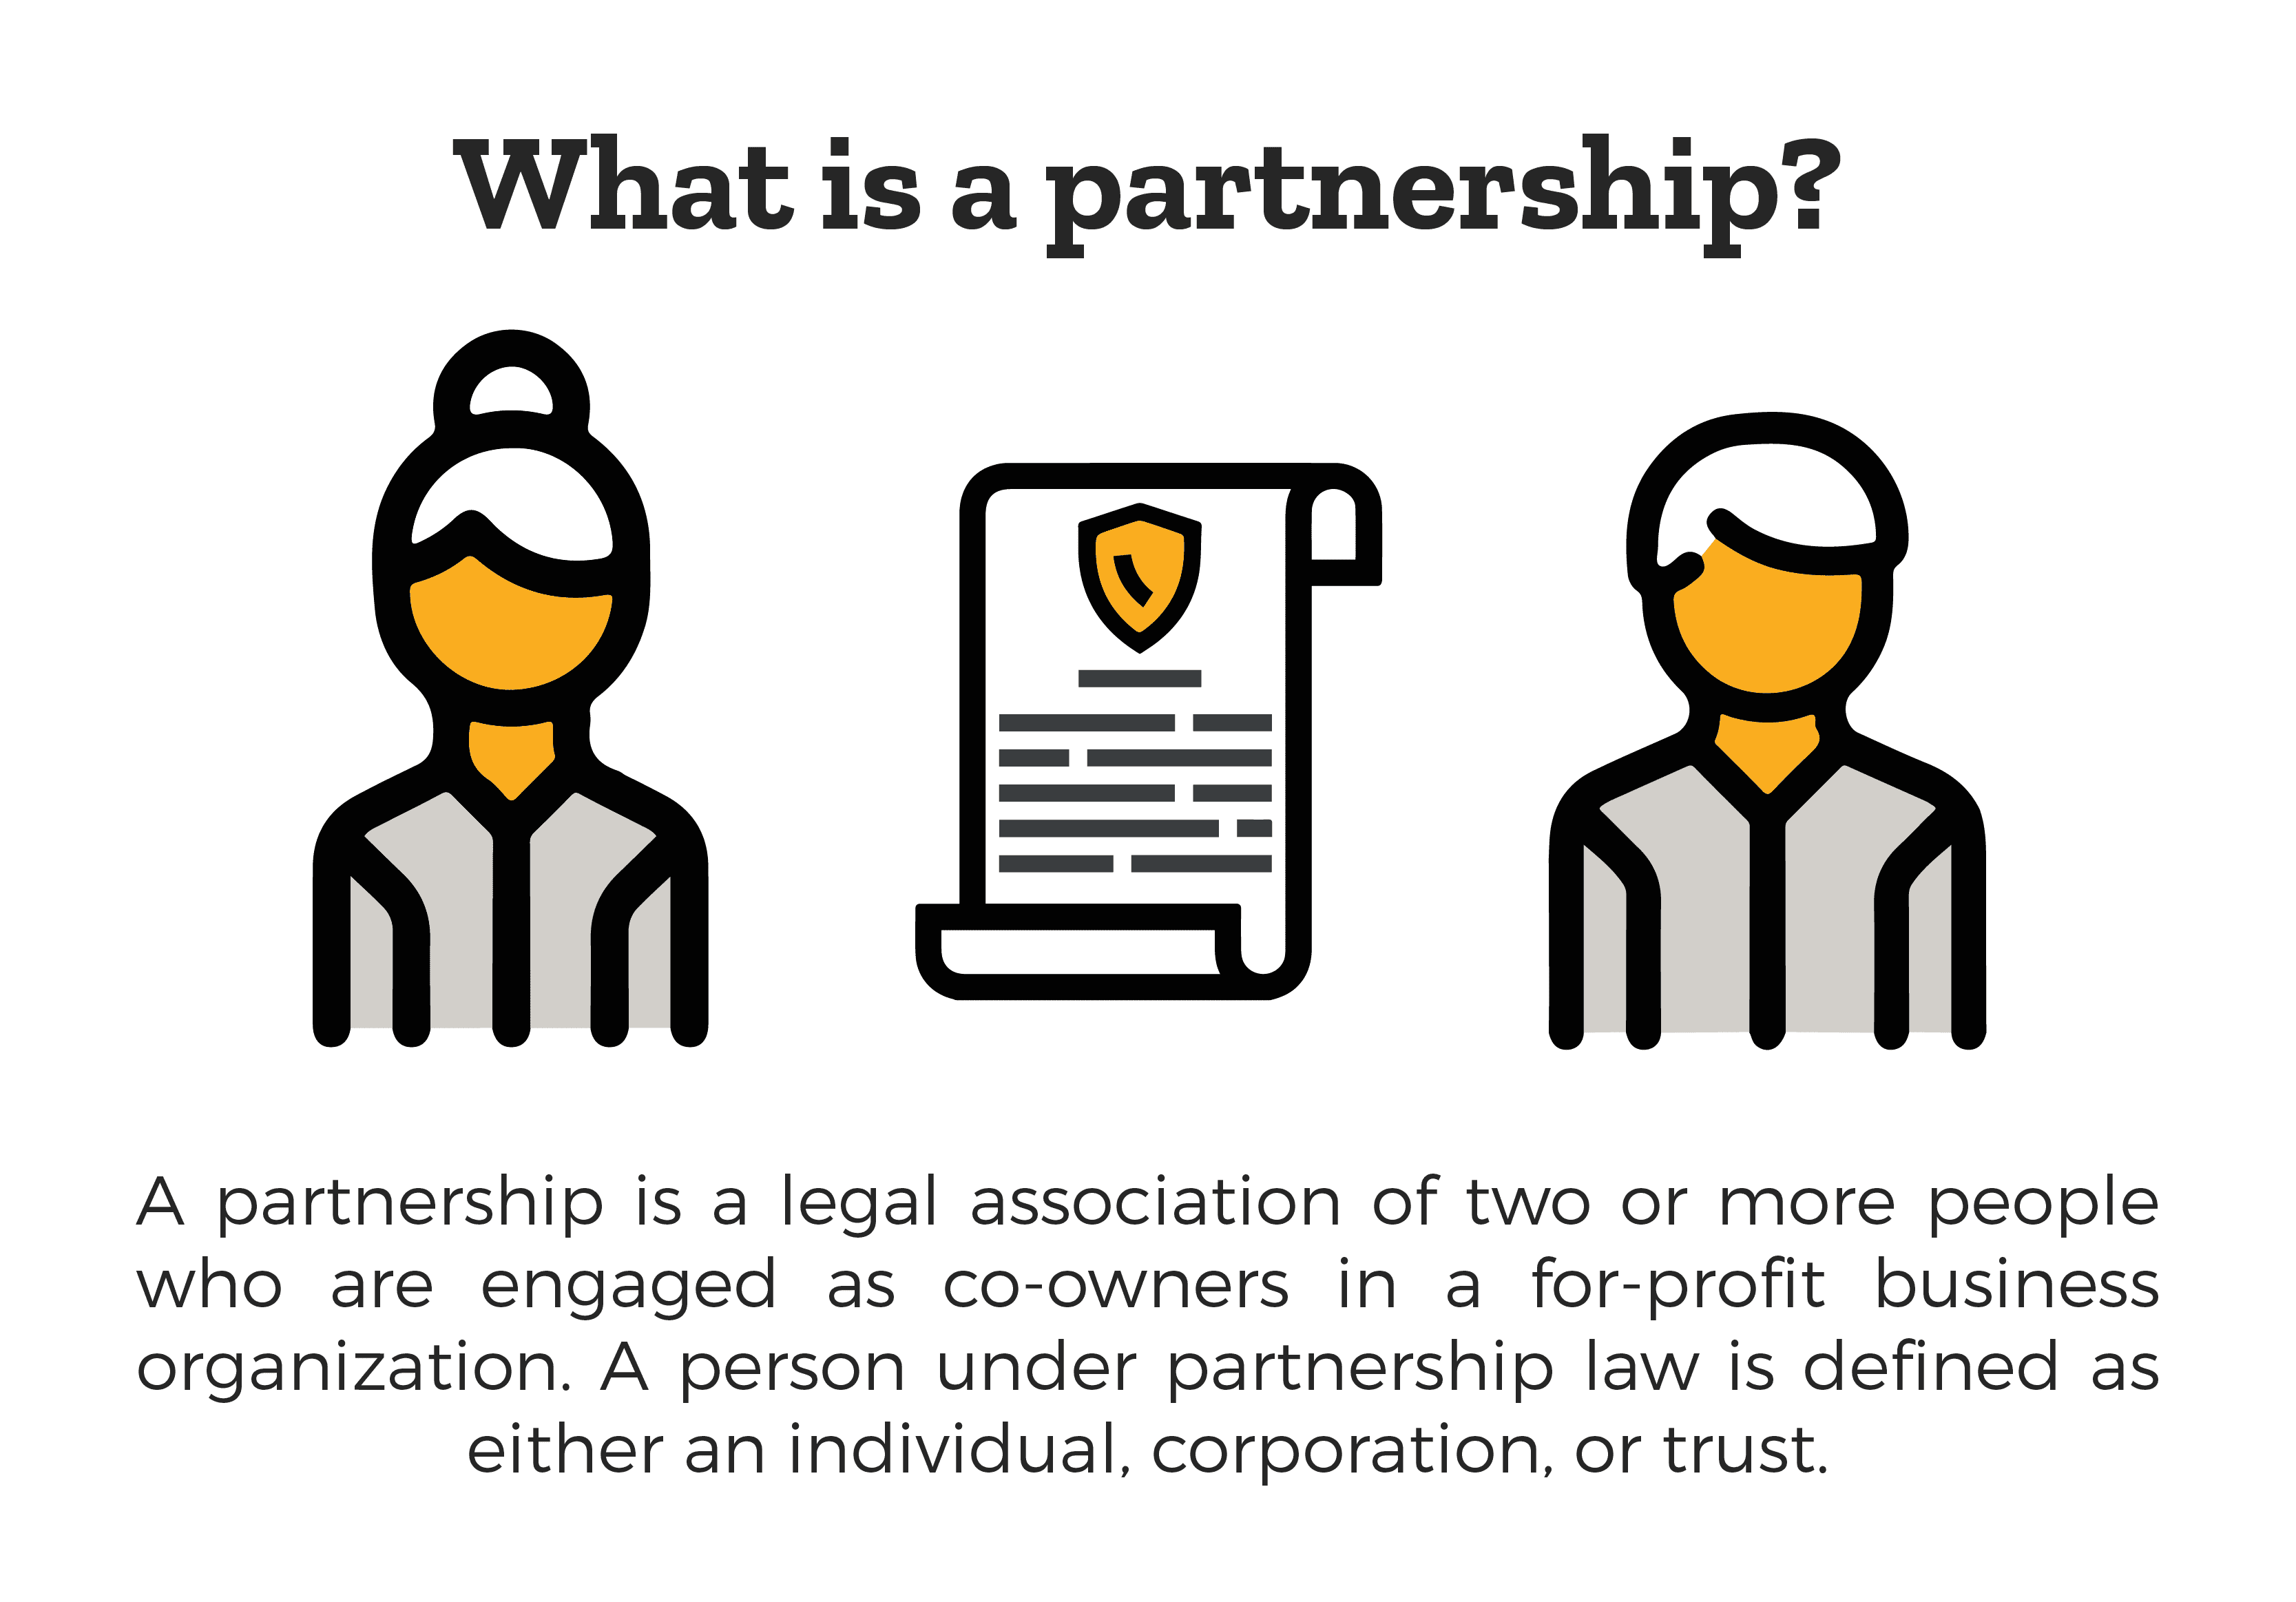 What Is a Partnership? - a partnership is a legal association of two or more people who are engaged as co-owners in a for-profit business organization. A person under partnership law is defined as either an individual, corporation, or trust.